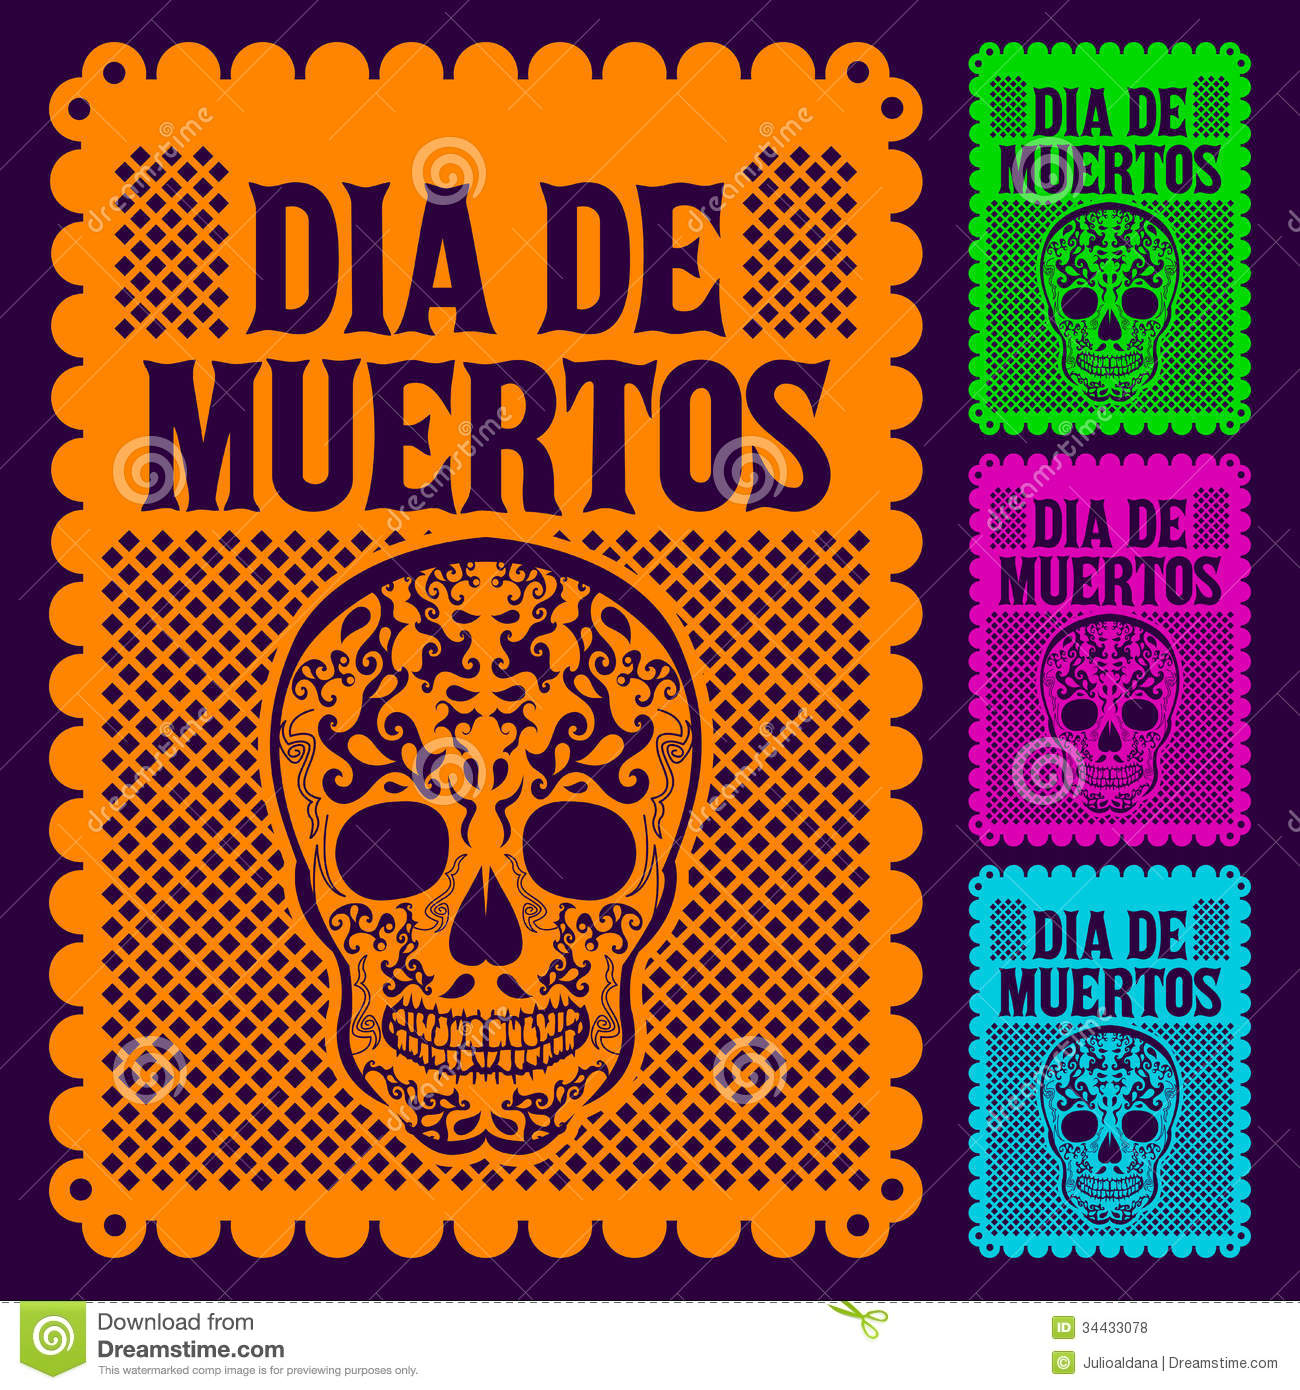 Dia de Muertos - Mexican Day of the death set